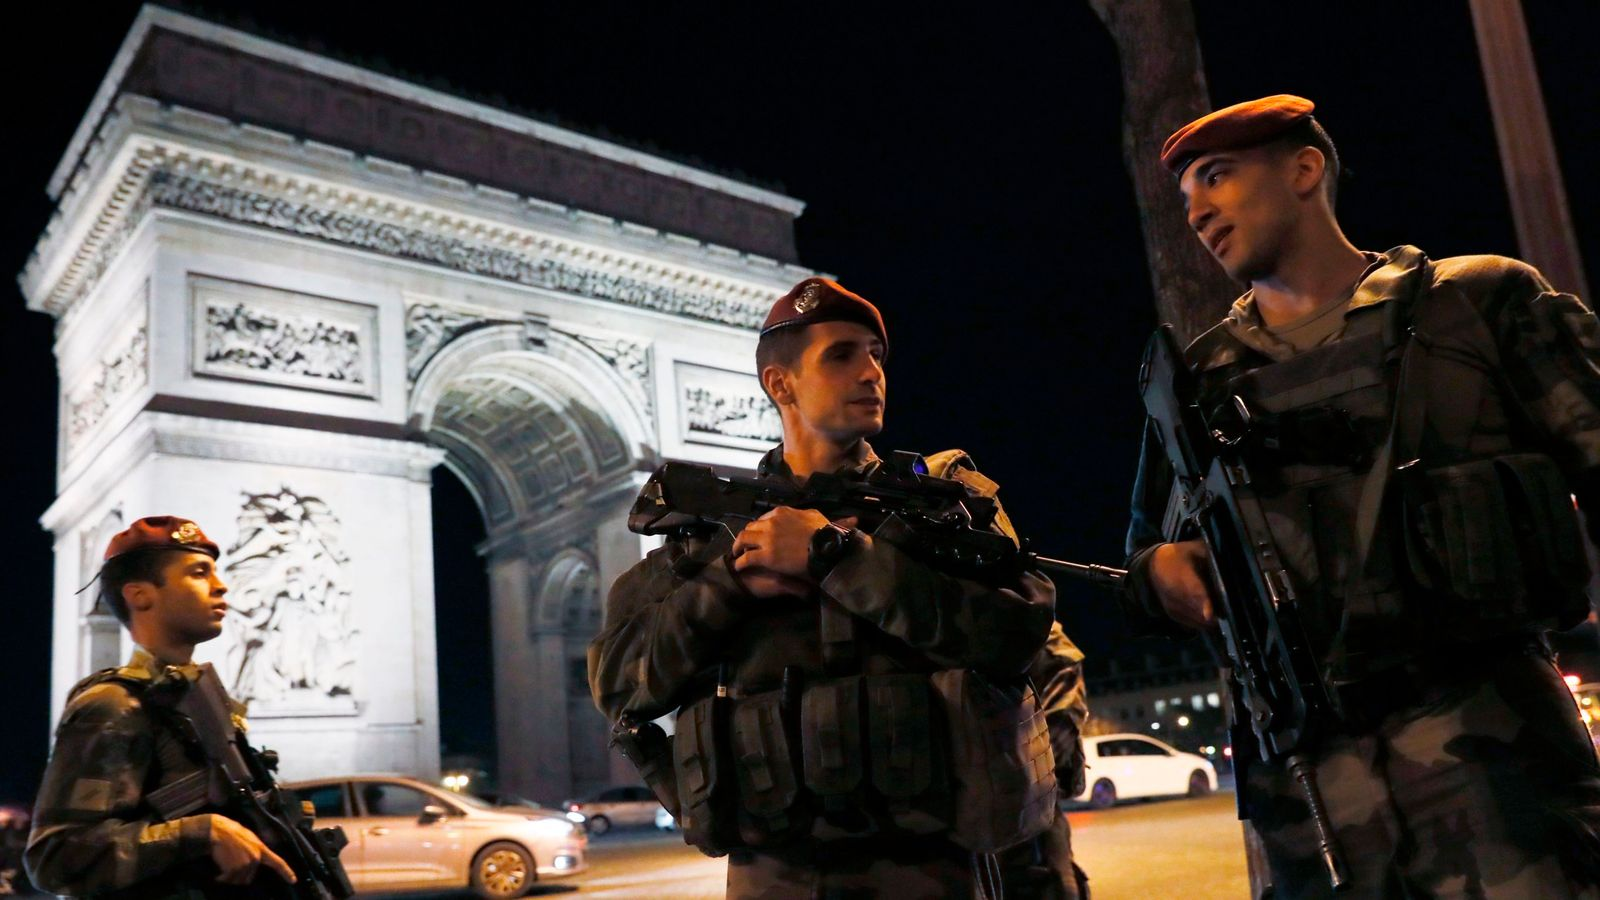 French soldiers stand guard at the Arc de Triomphe near the Champs Elysees in Paris after a shooting on April 20, 2017